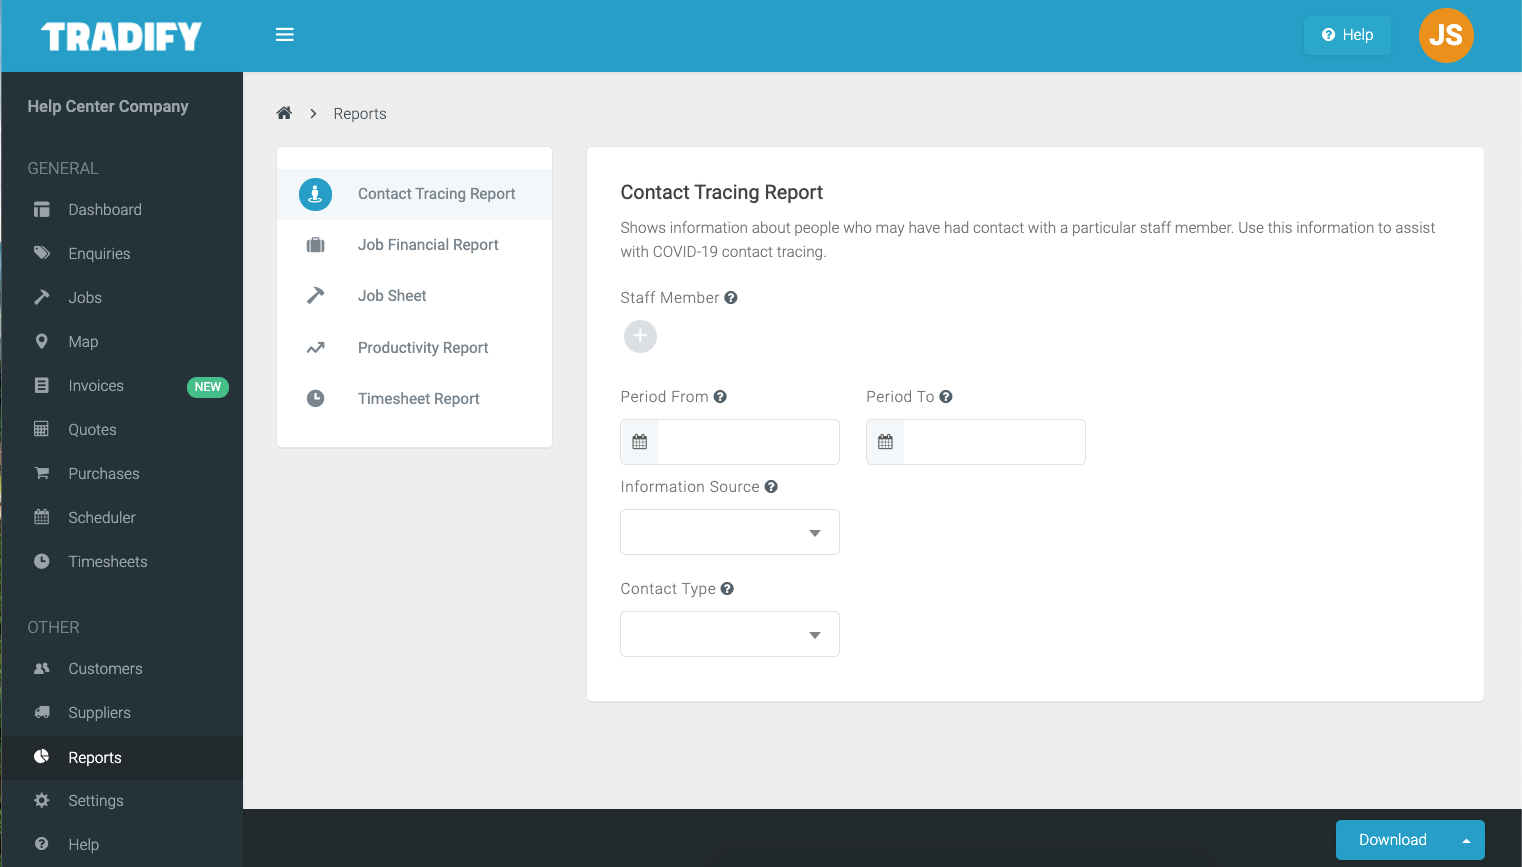 Contact Tracing Report in Tradify